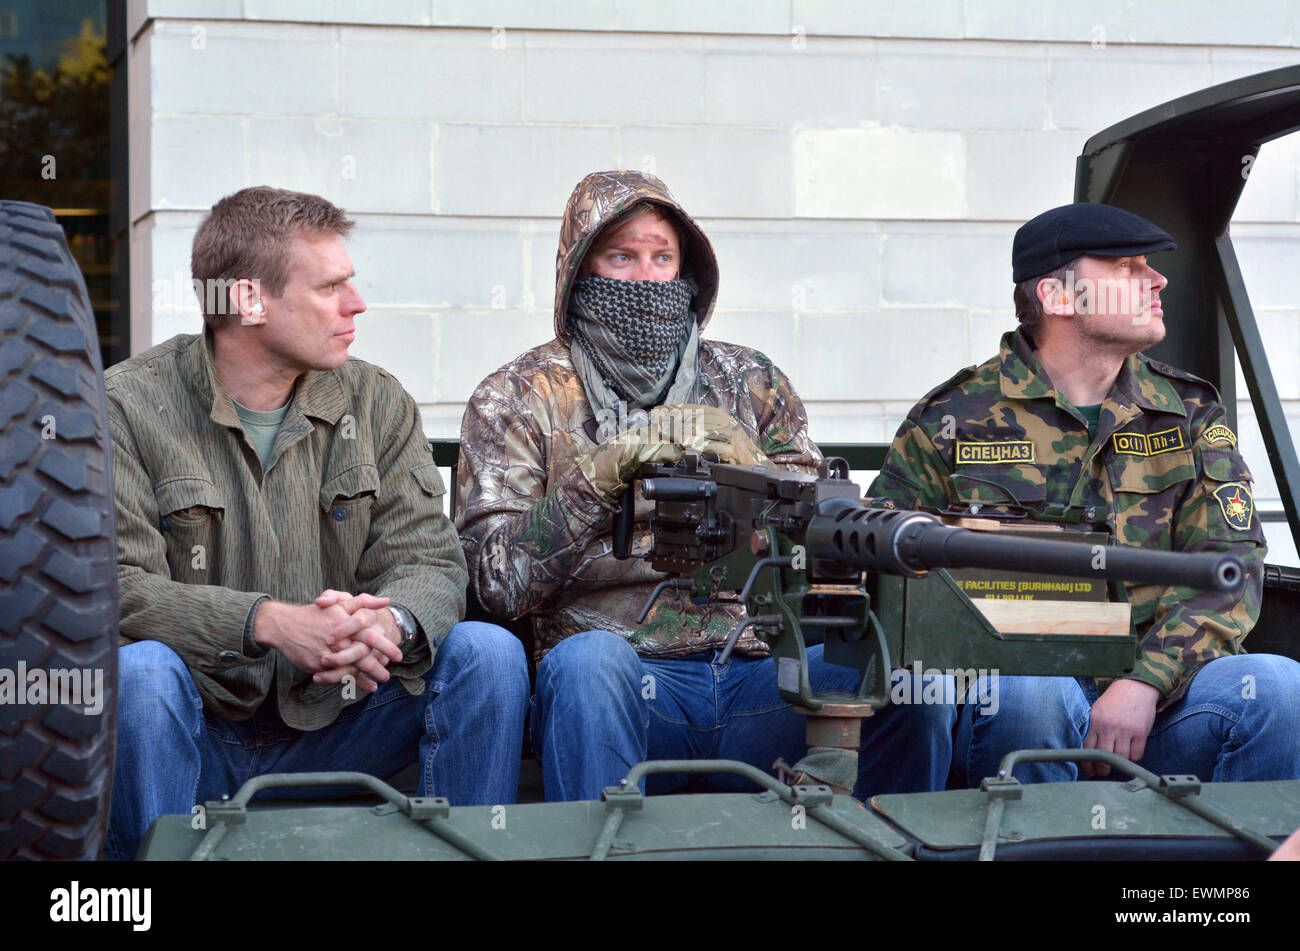 LONDON - MAY 14 2015:British soldiers dress as Militia during military show in London, UK.It's a fighting force - Stock Image